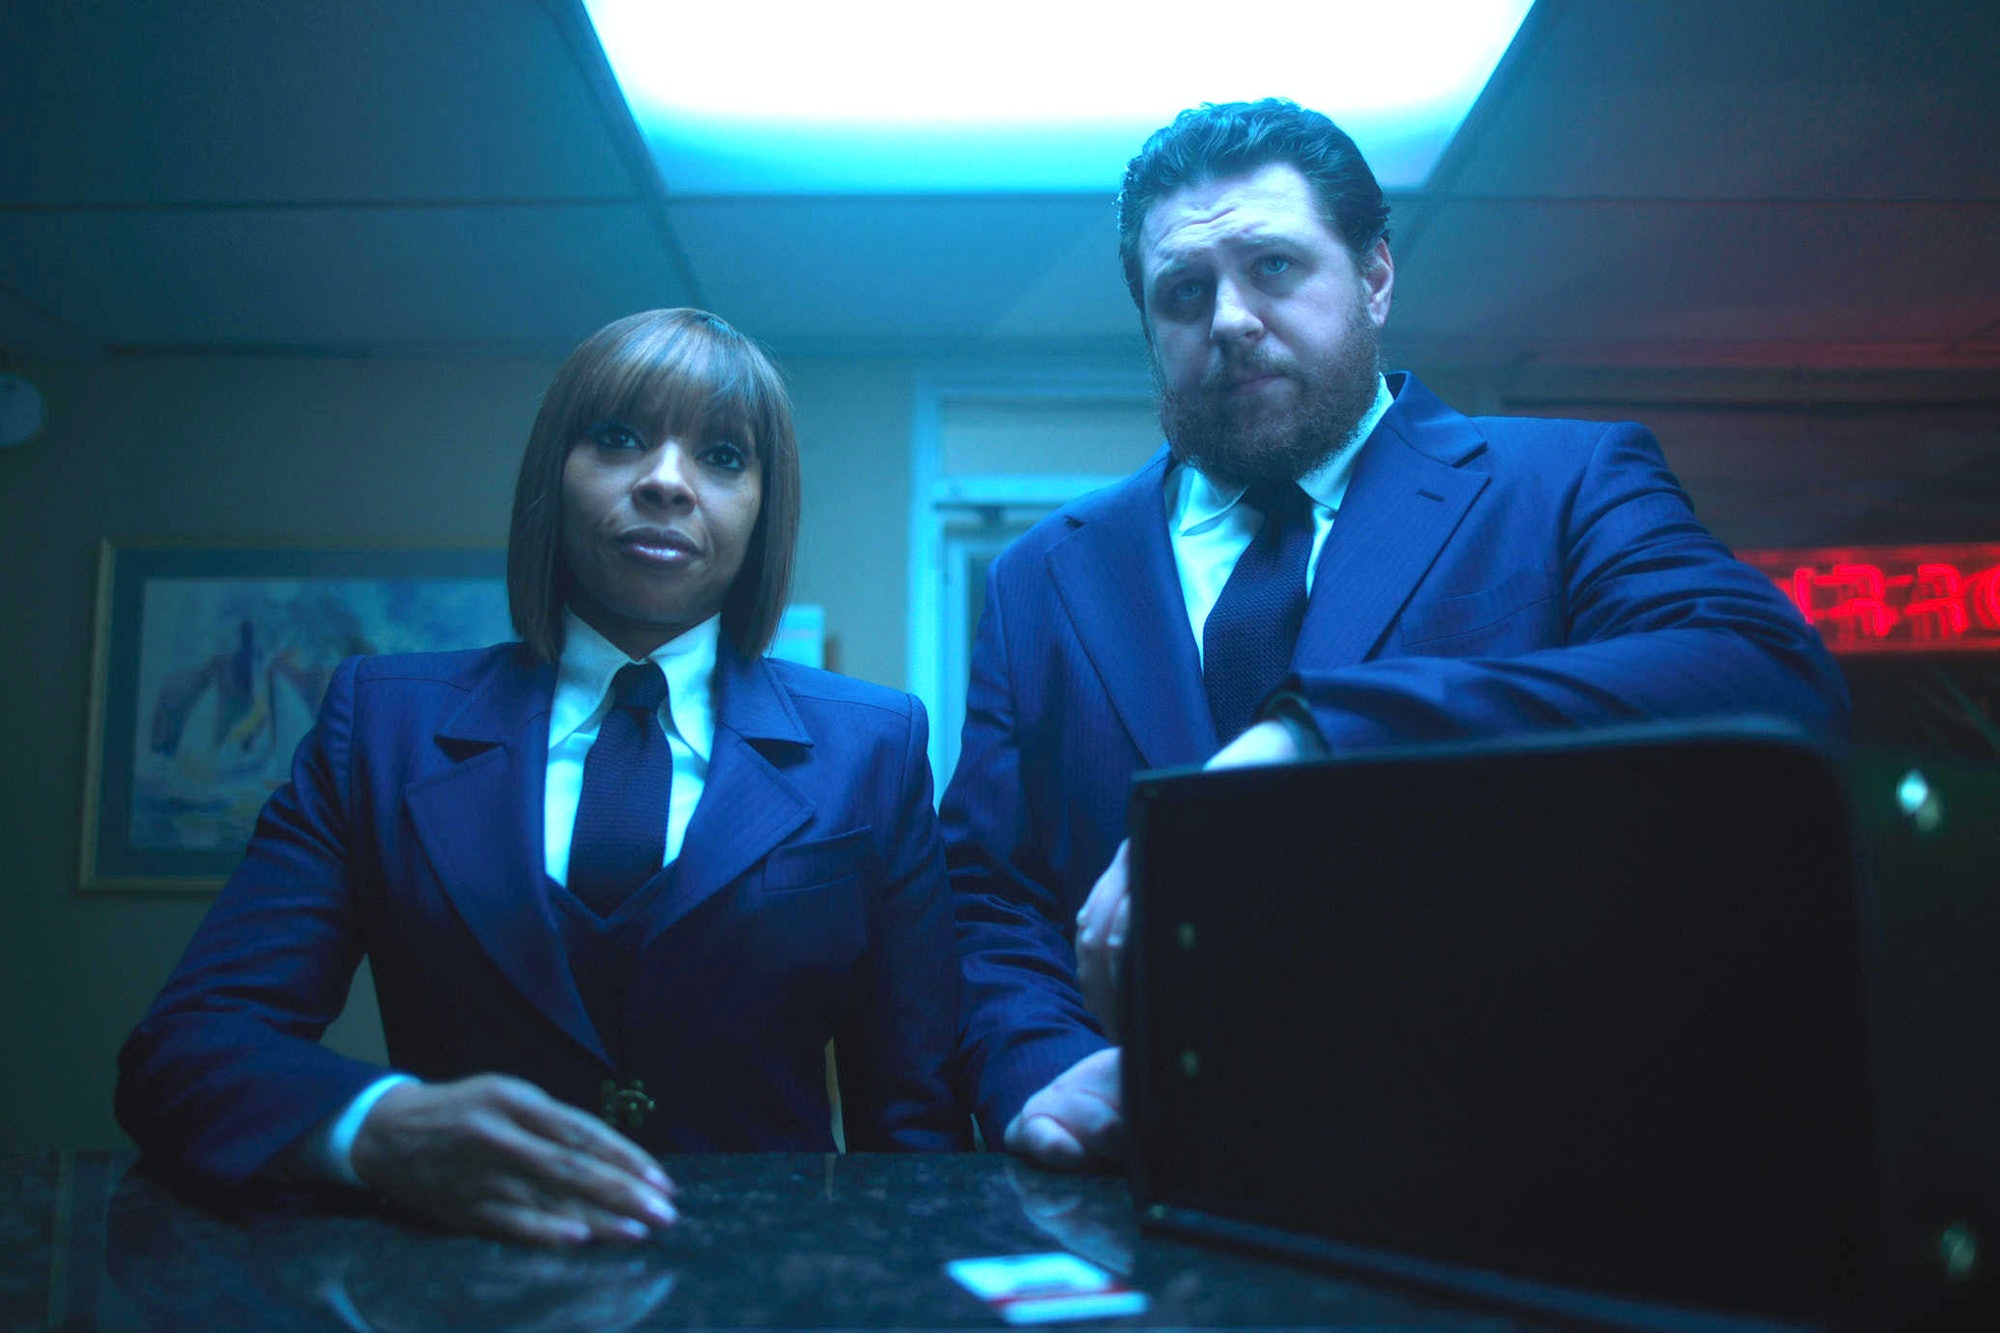 Britton (Hazel) with Mary J. Blige (Cha-Cha) in 'The Umbrella Academy'